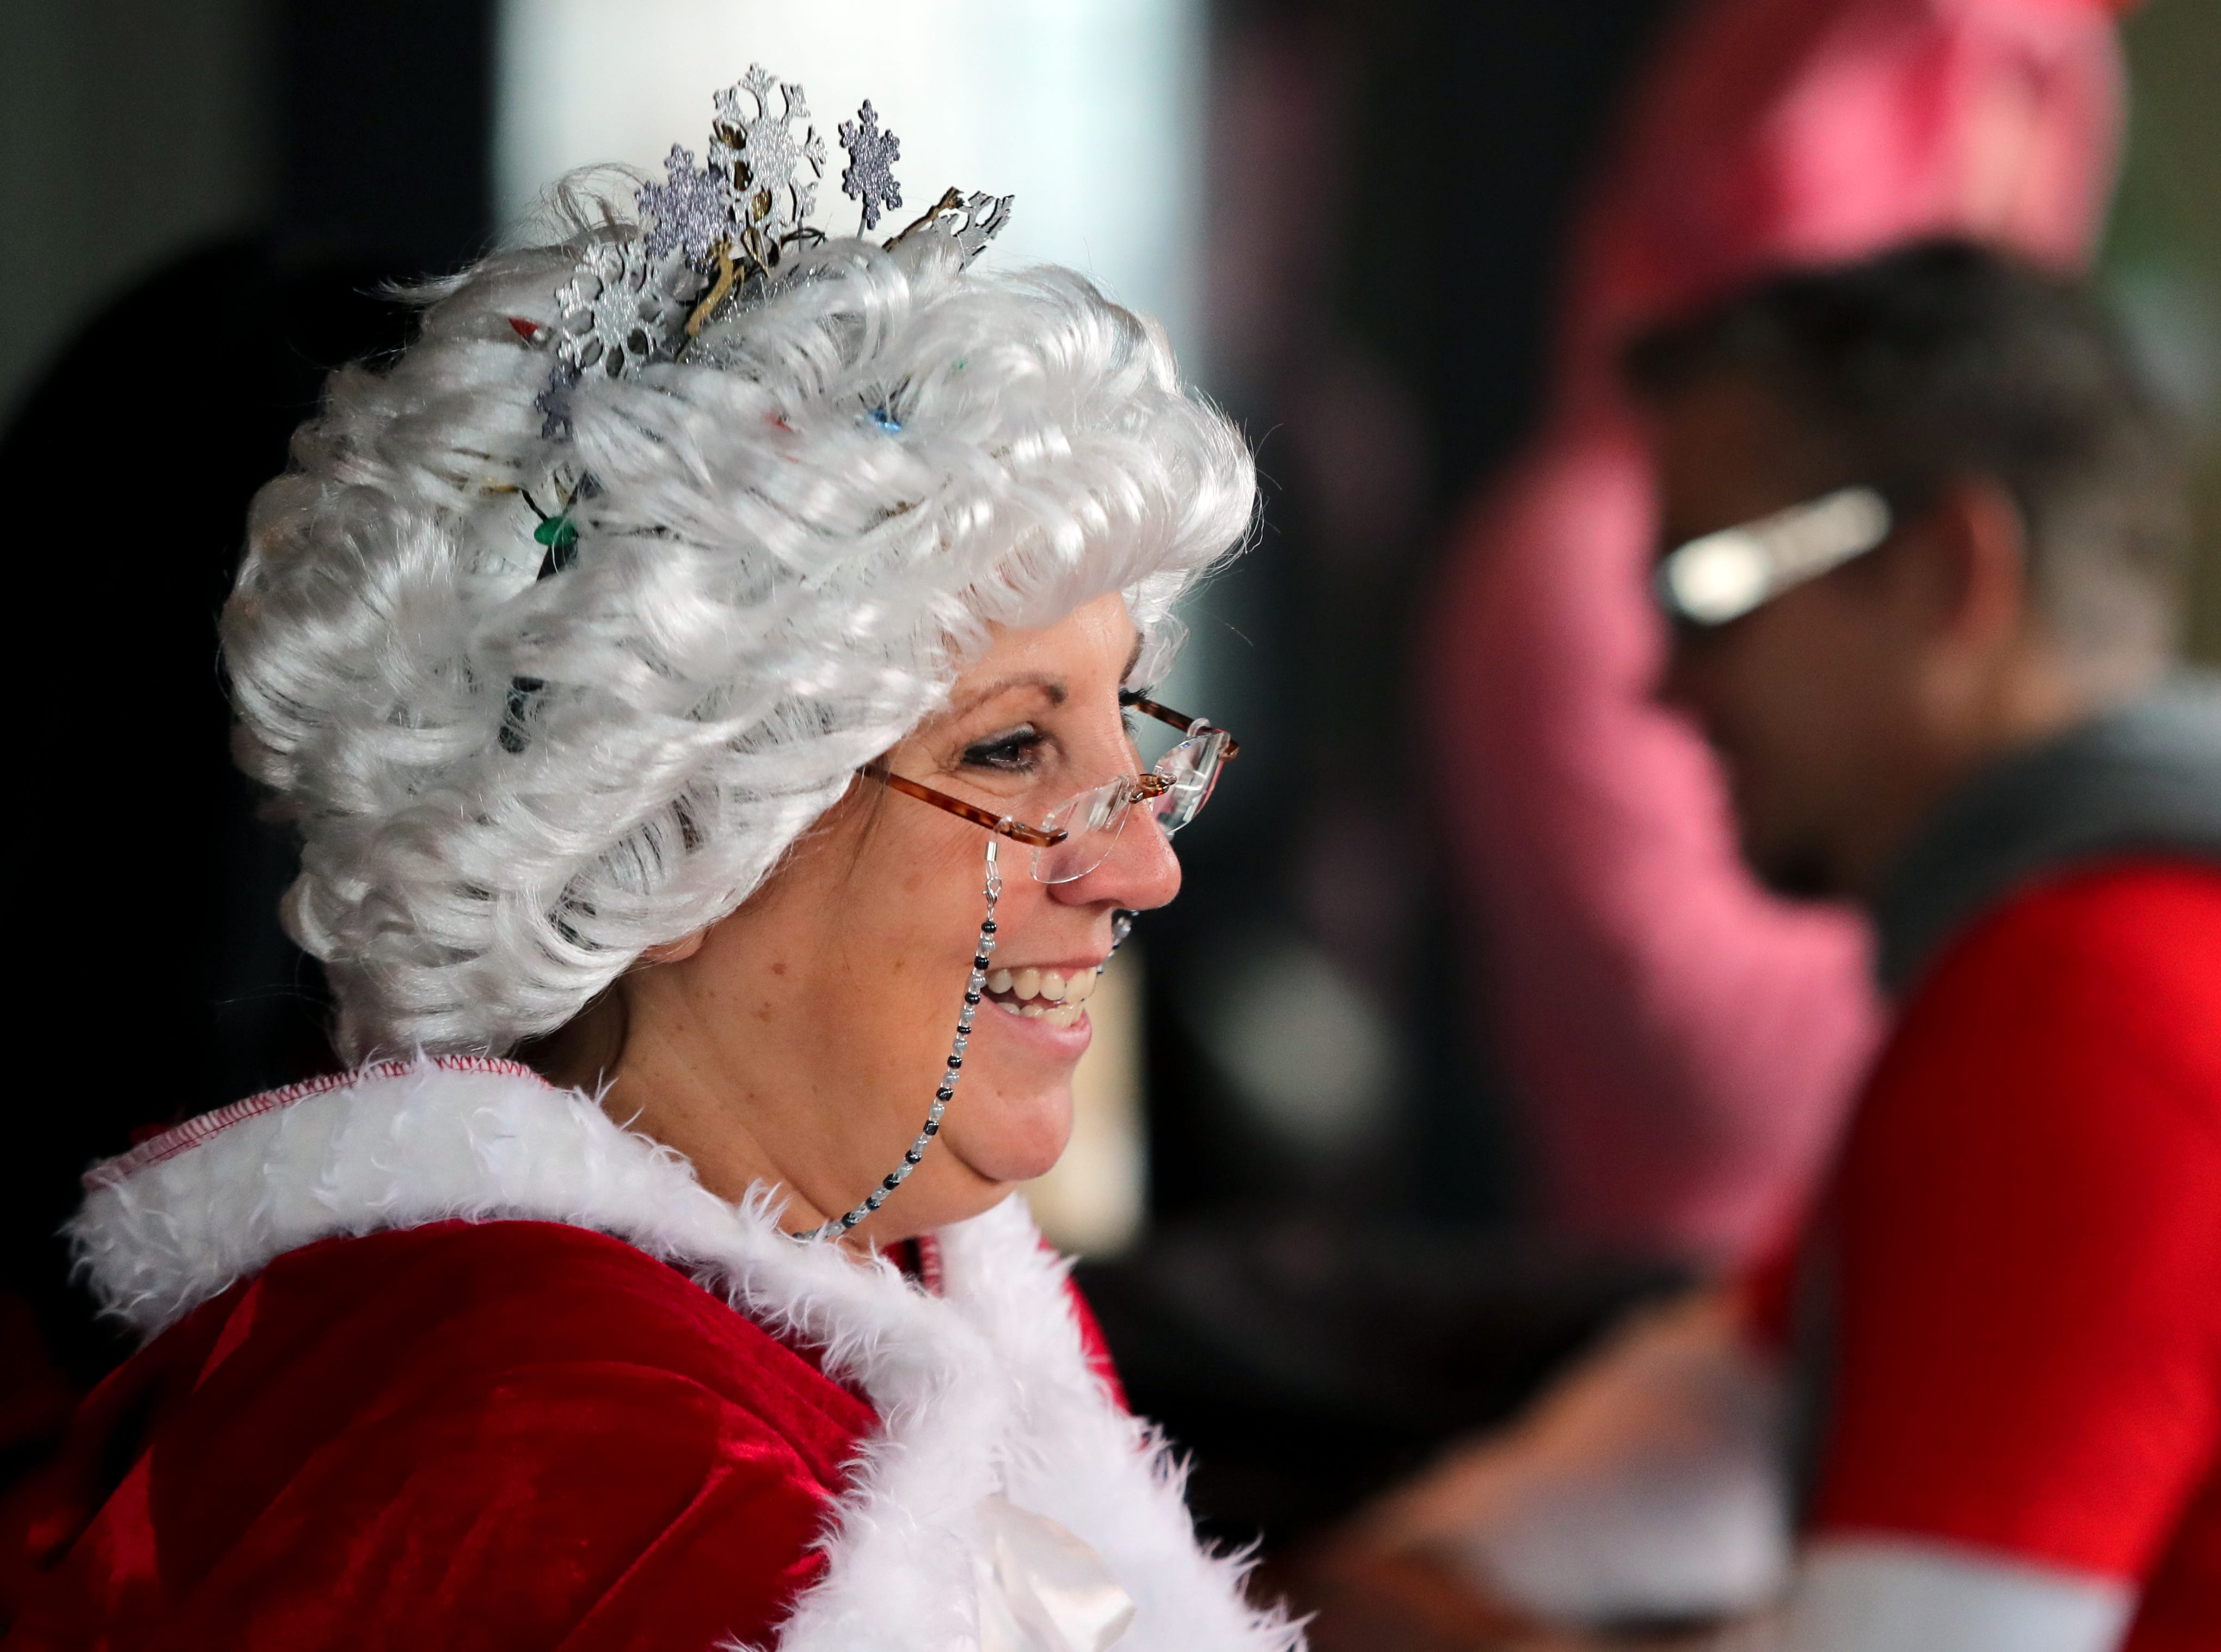 Lisa Robbins enjoys 8 UP, the first location on the Louisville SantaCon journey. Dec. 8, 2018